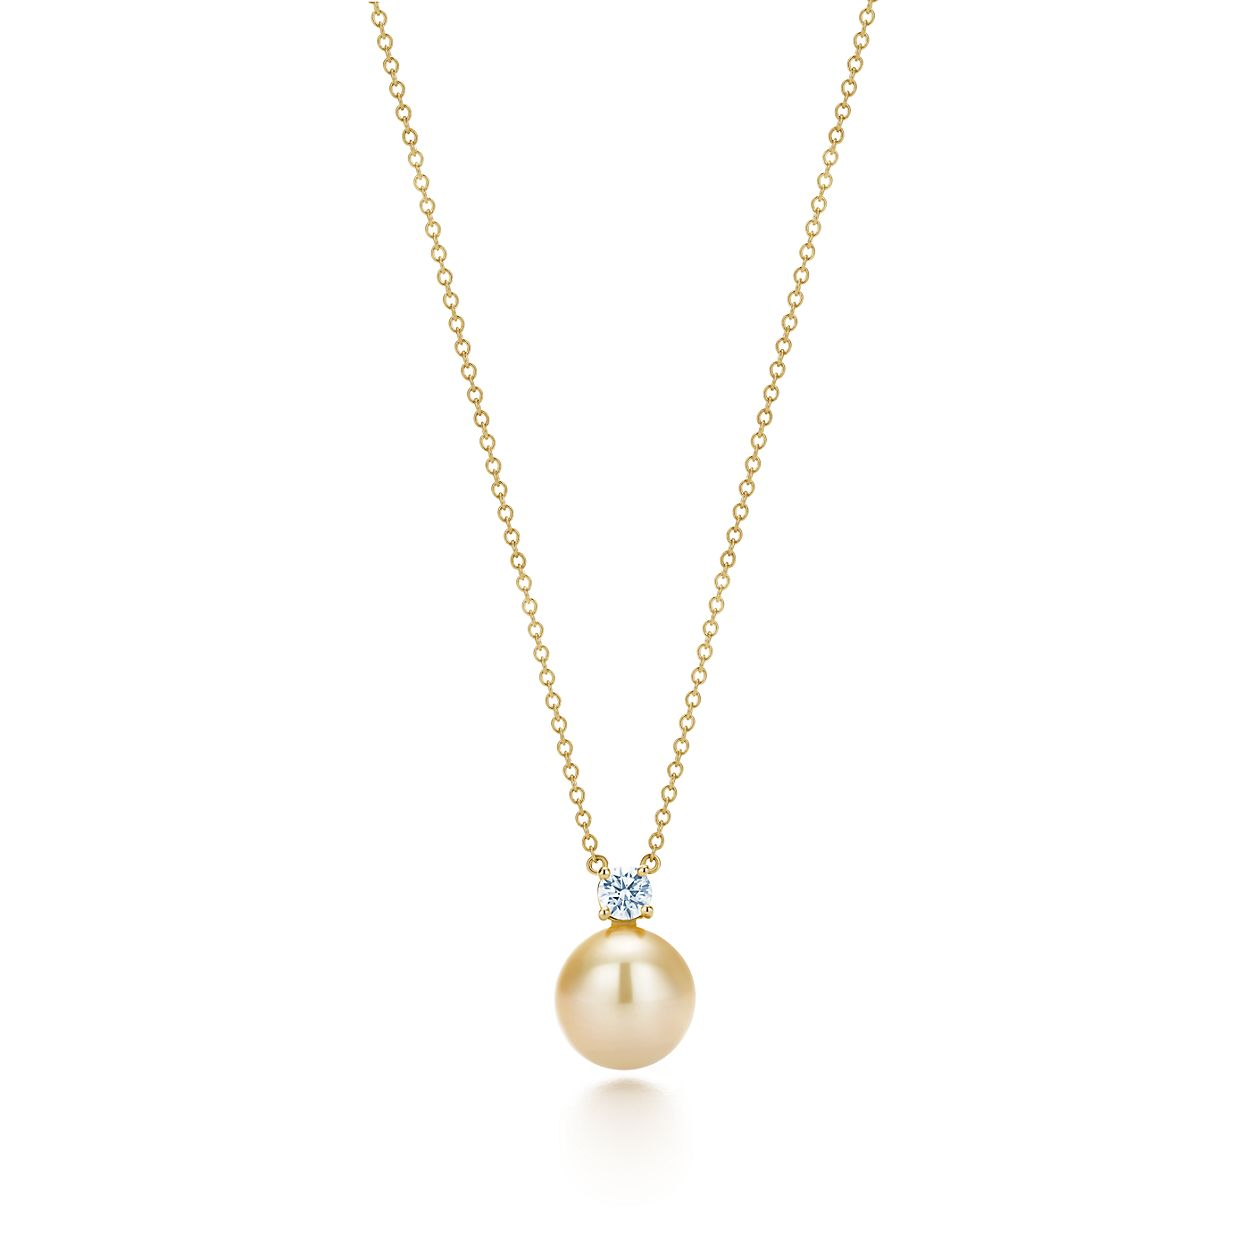 original pearl off com claudetteworters white gold notonthehighstreet necklace rose claudette sawrovski by product worters